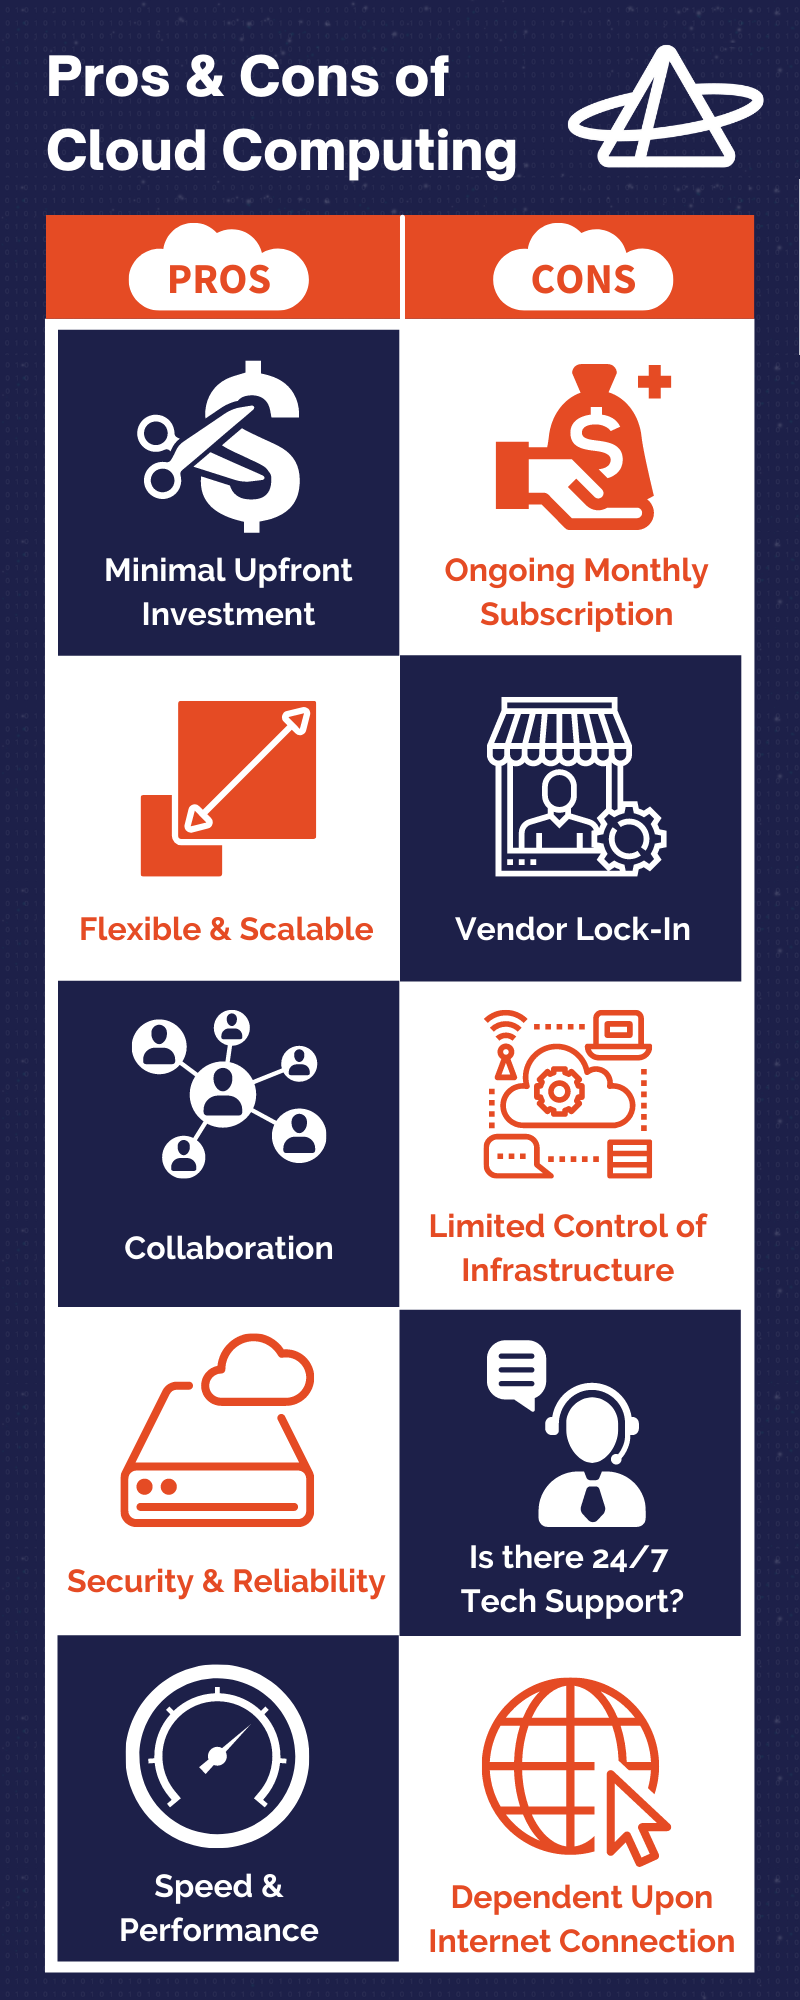 Pros & Cons of Cloud Computing